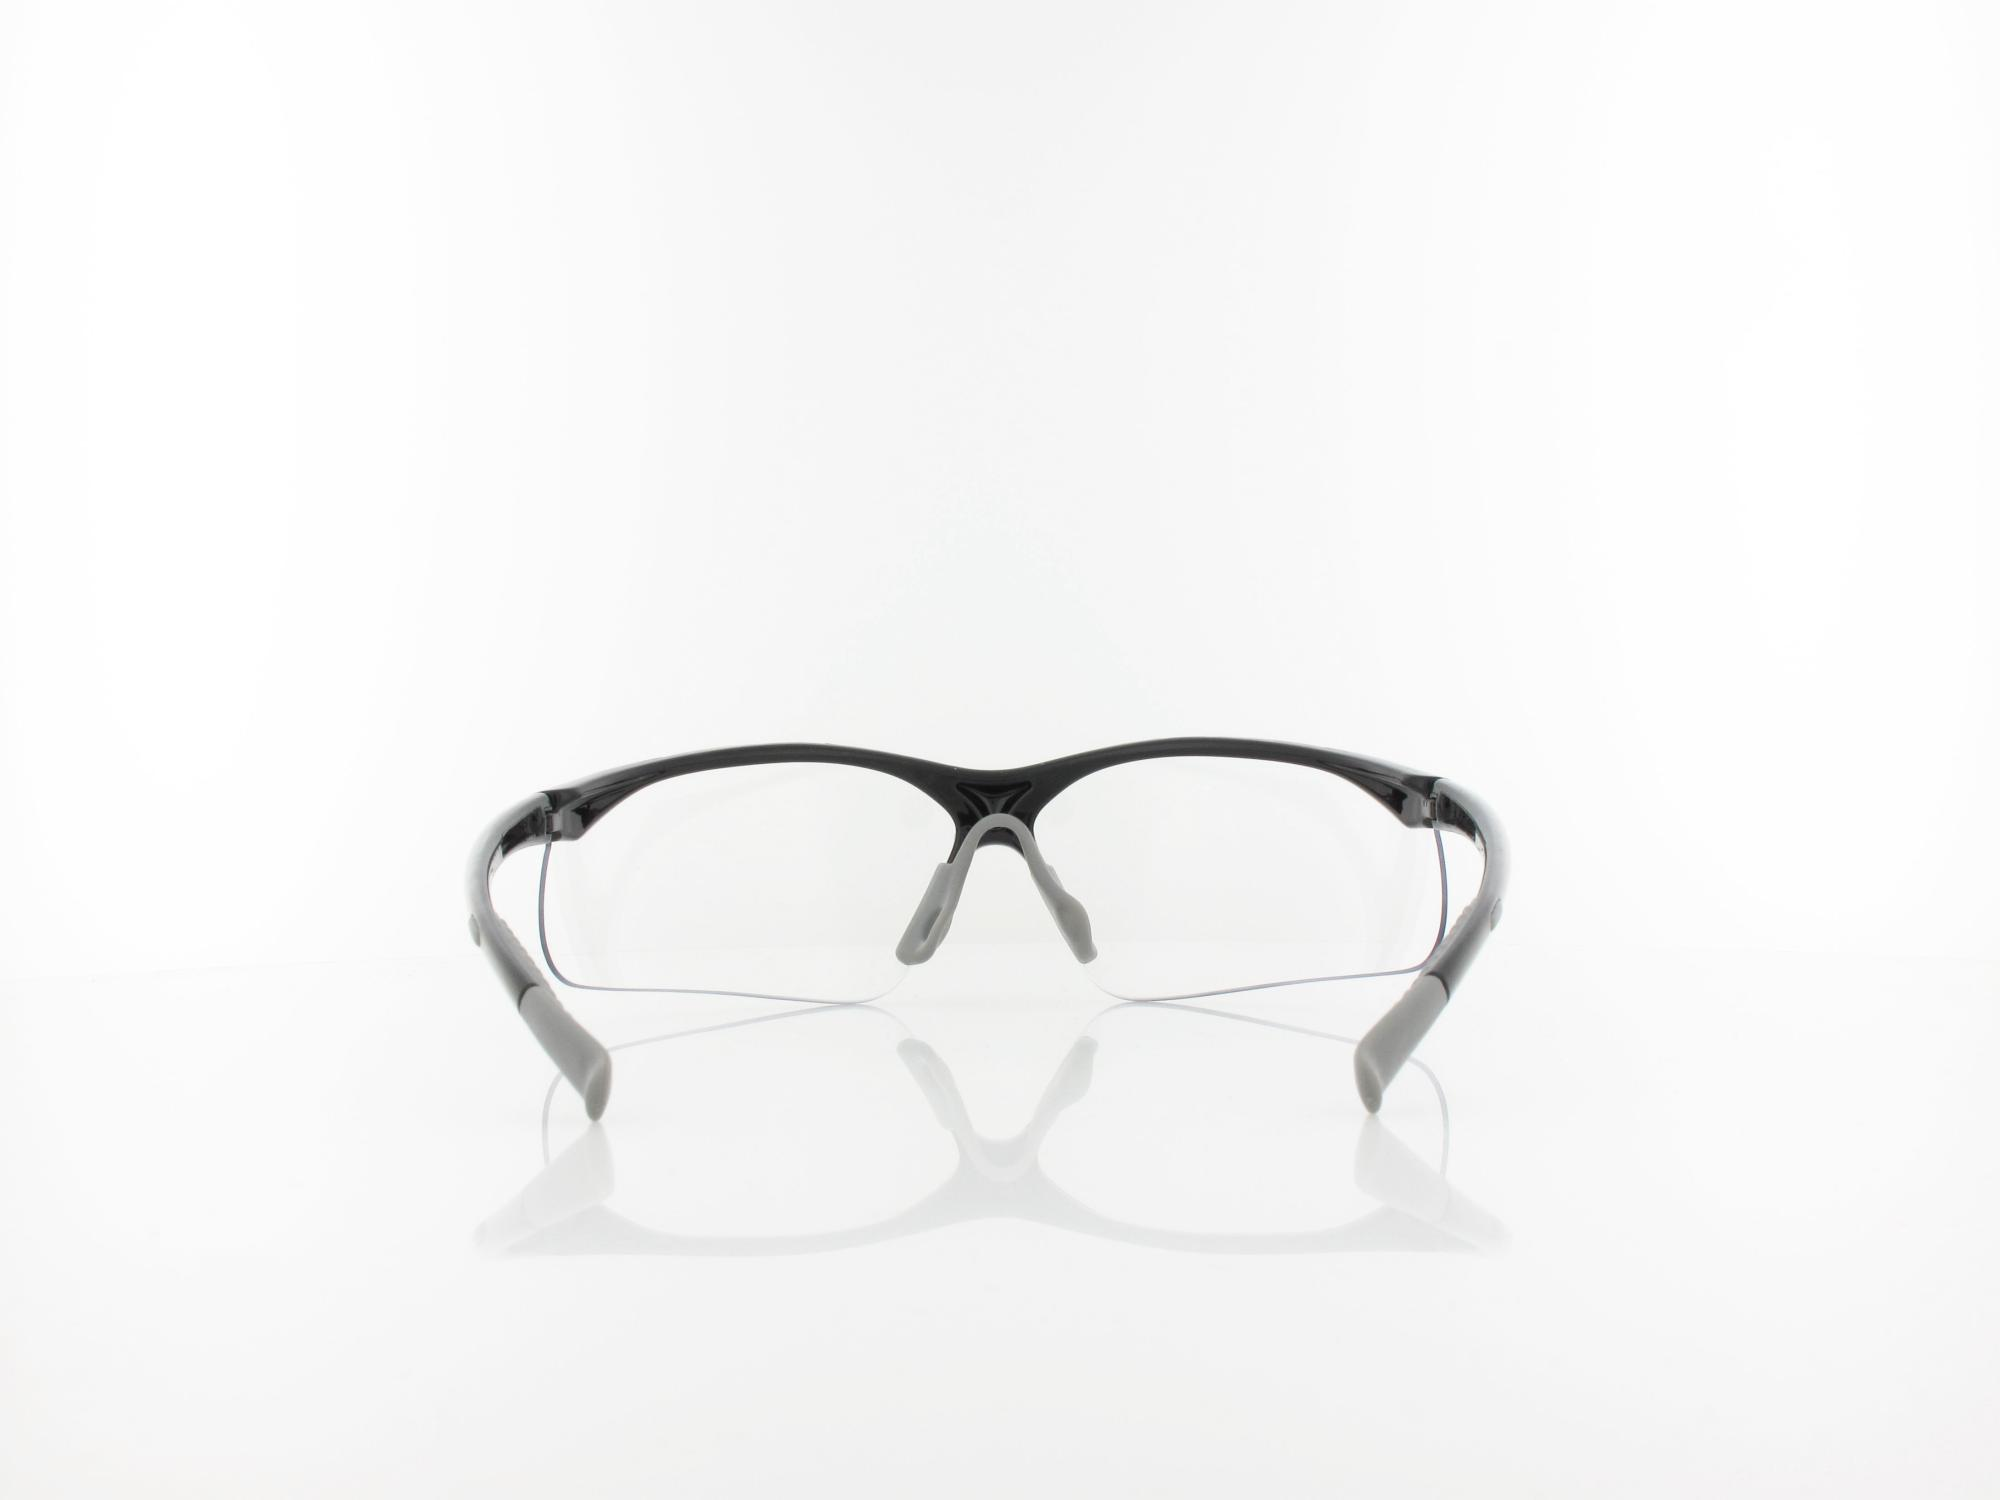 UVEX | Sportstyle 223 S530982 2218 75 | black grey / clear